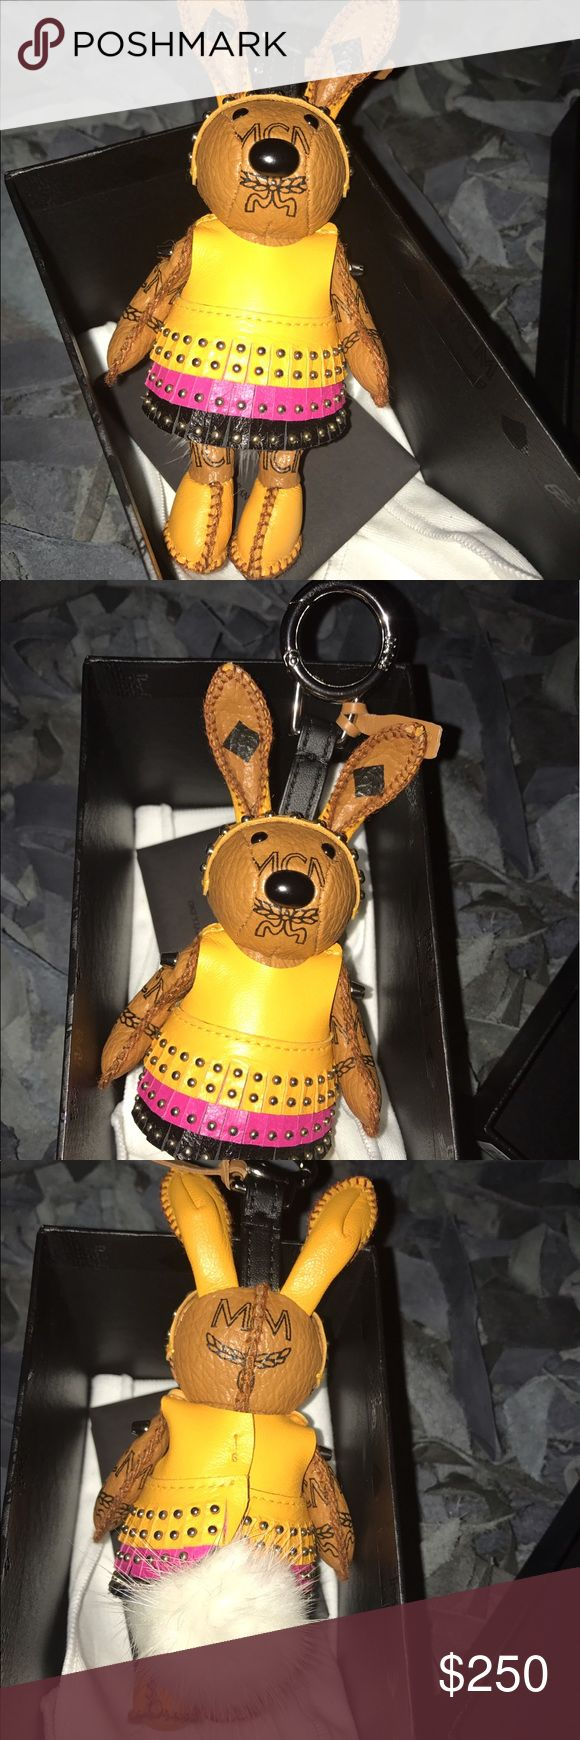 Brand New MCM Disco Bunny bag charm Brand New unused Authentic MCM Disco Bunny bag charm with original tags and dust cloth in MCM box MCM Other